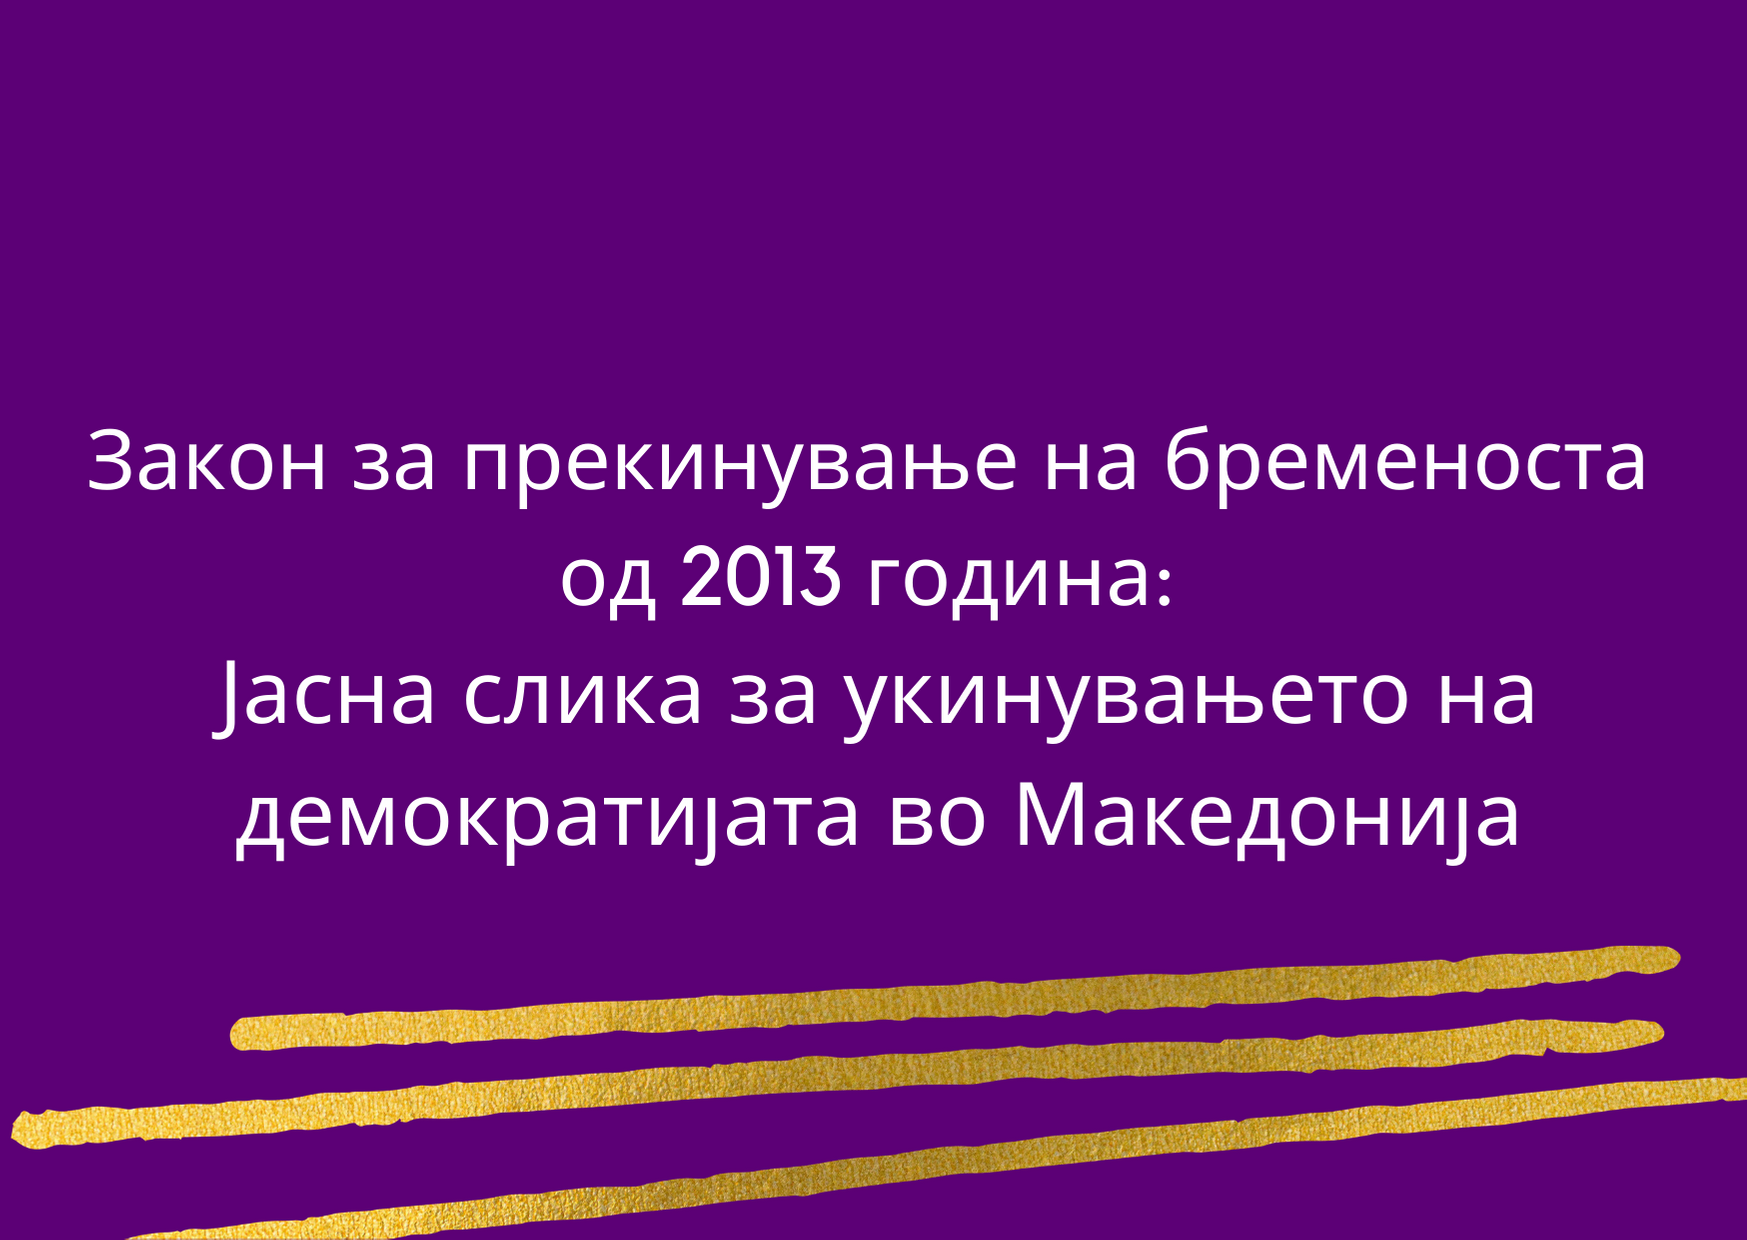 The 2013 Law on Termination of Pregnancy: A Clear Case of the Suspension of Democracy in Macedonia